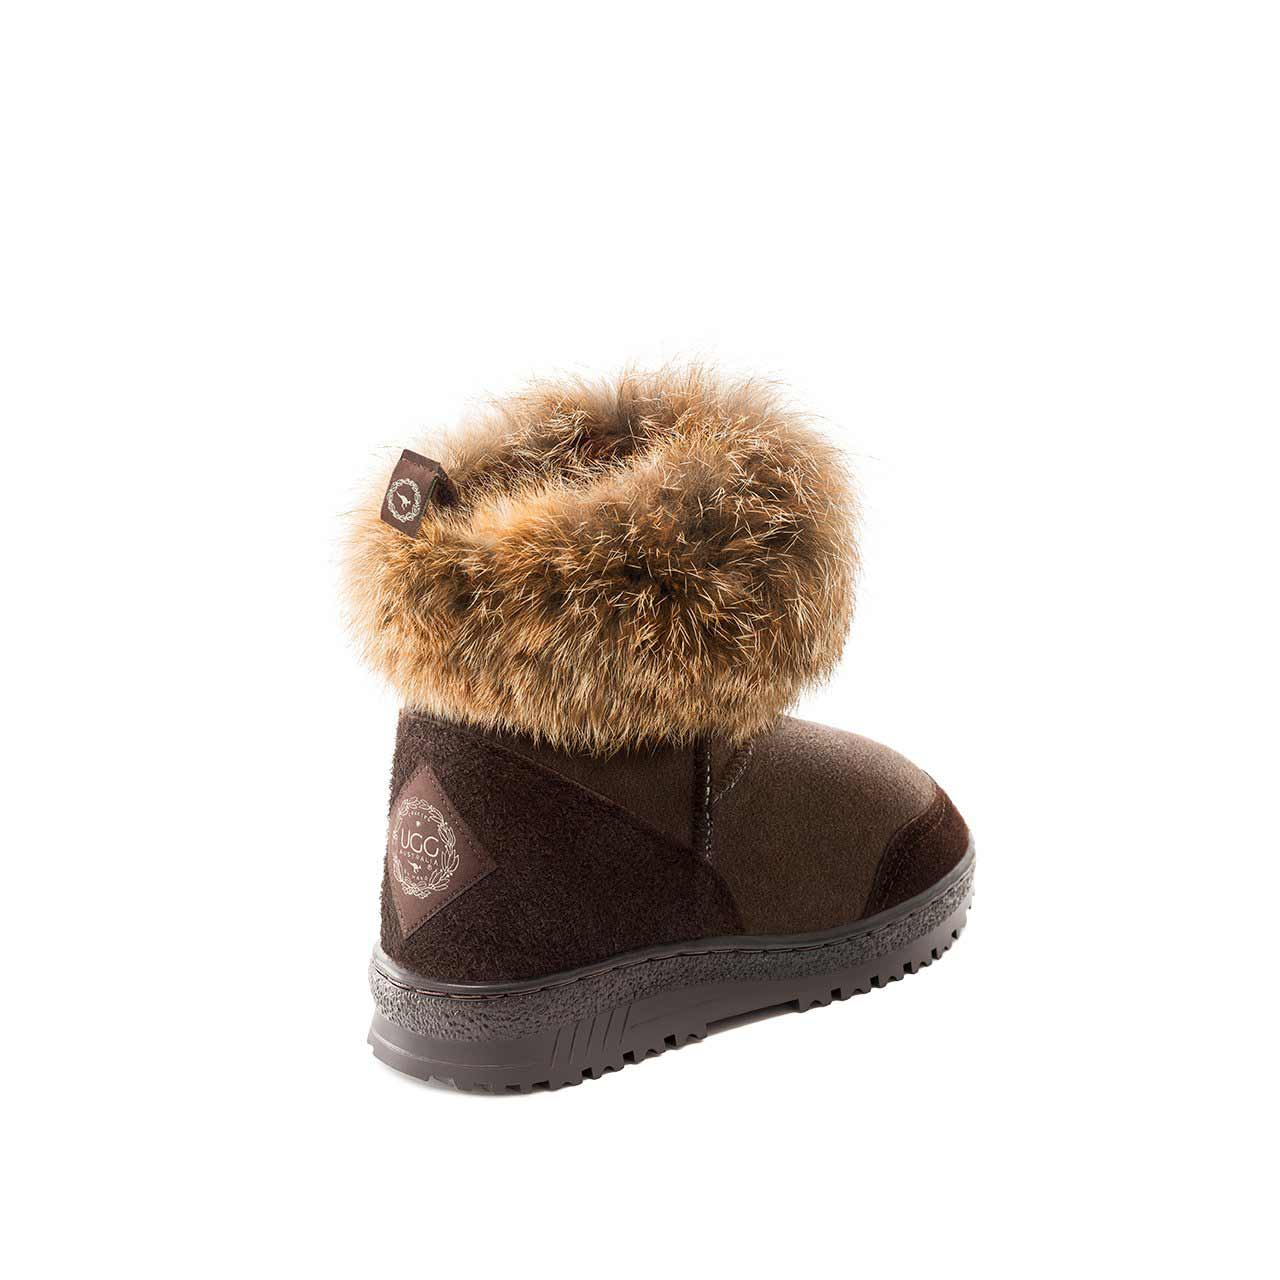 Bondi Mini Fox Boots | 100% Australian Made | Ugg Australia